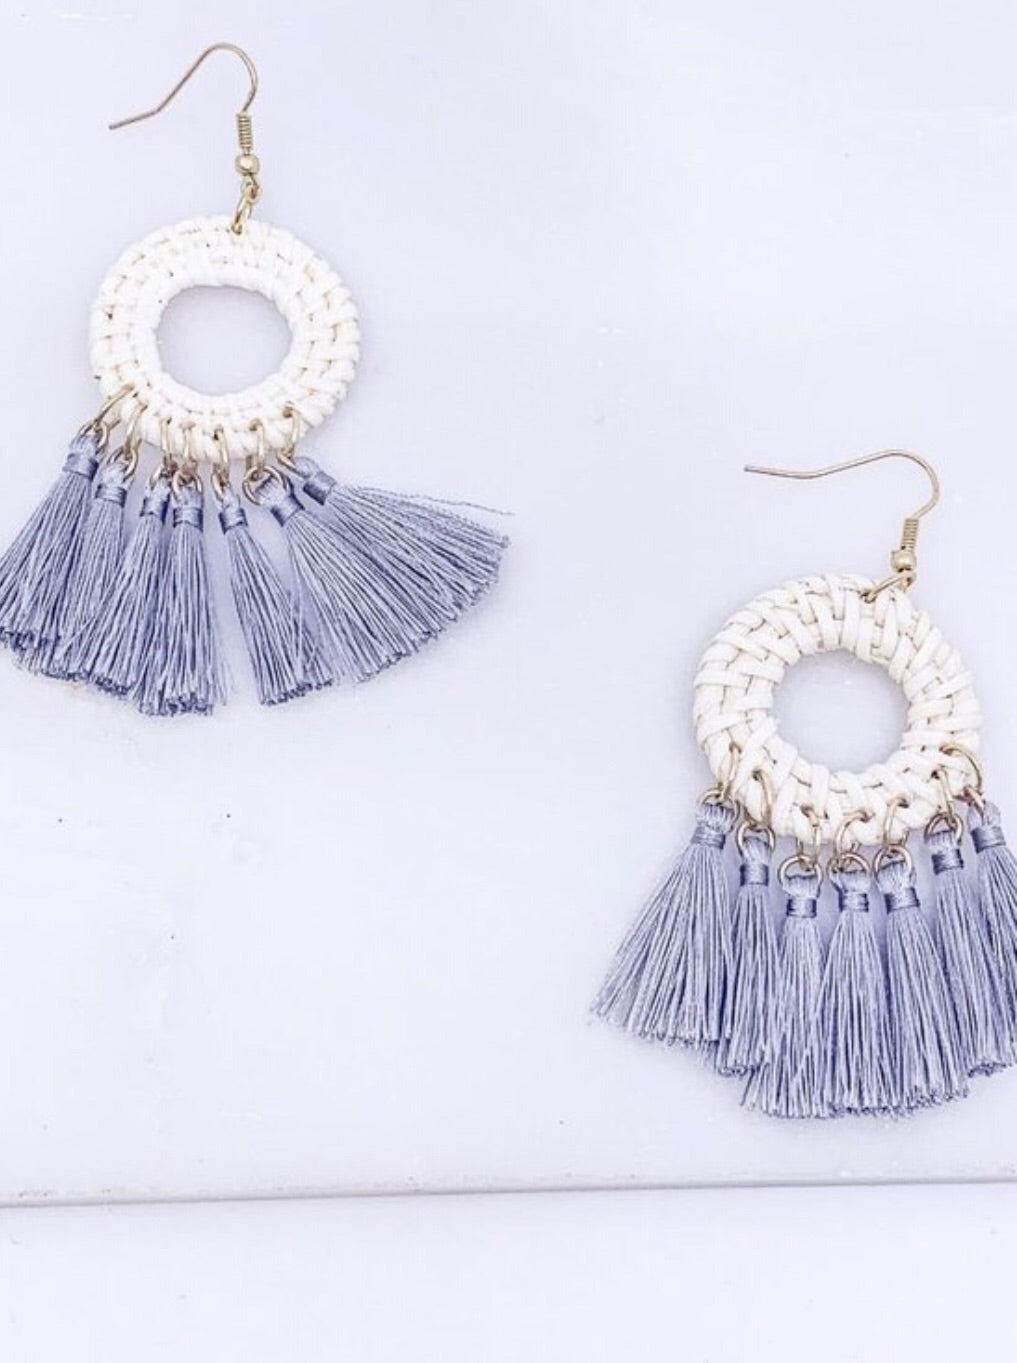 When I'm with You Earrings - Inward Beauty Boutique